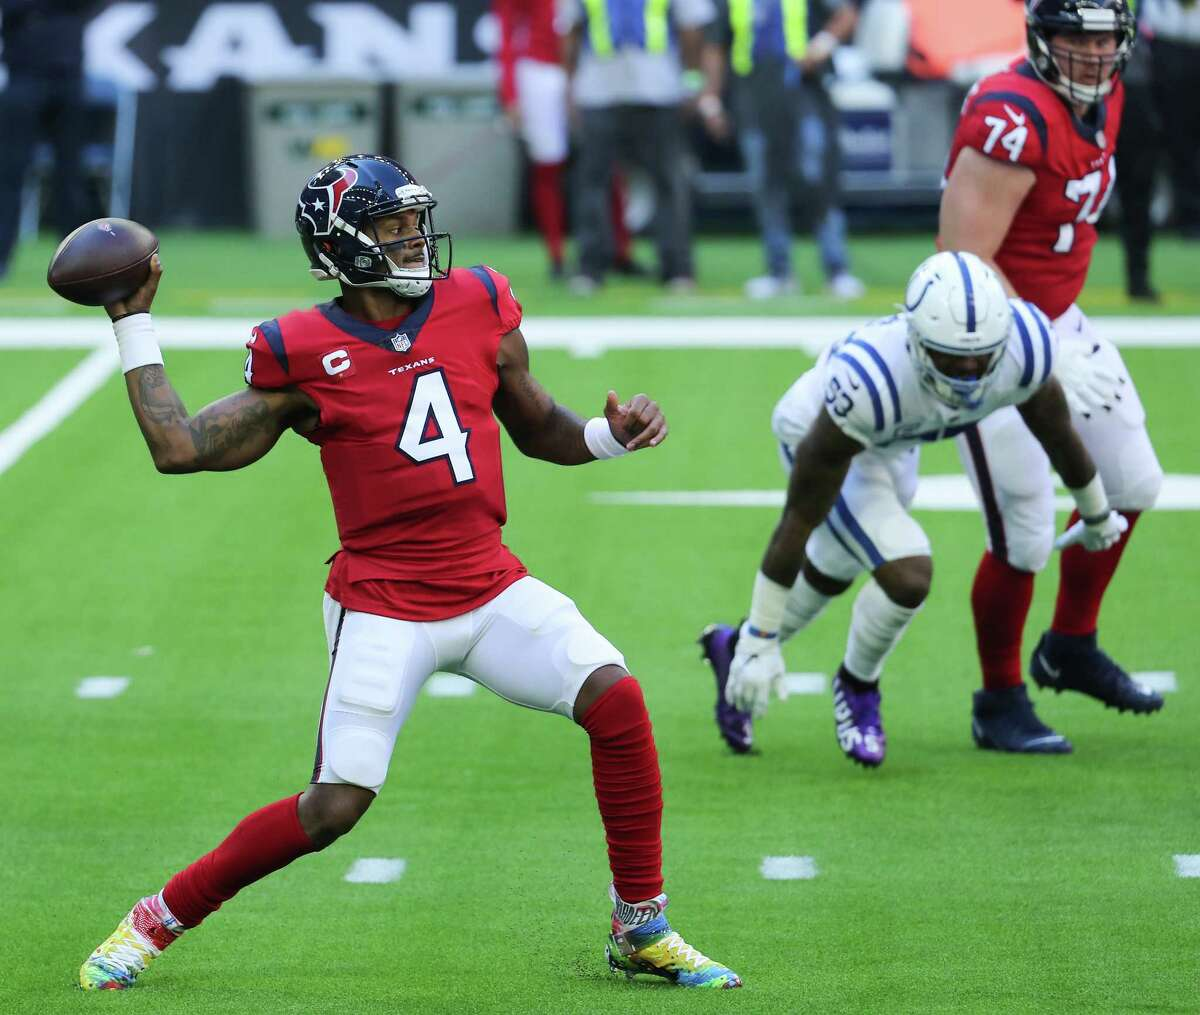 Deshaun Watson will get his first crack at a Bears franchise that infamously passed on picking him in the 2017 draft.